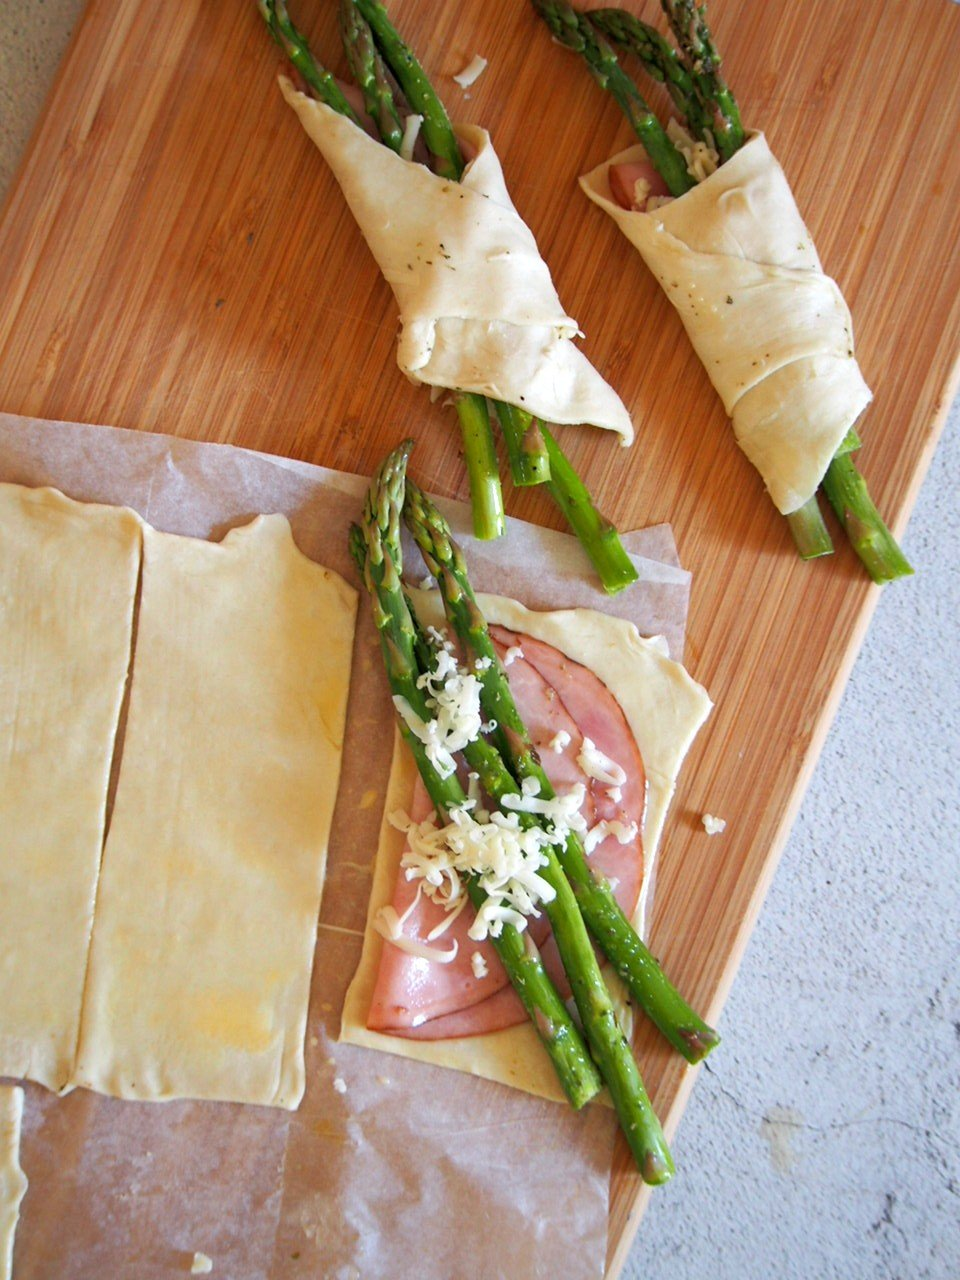 Assembling the asparagus, ham and cheese inside the puff pastry.